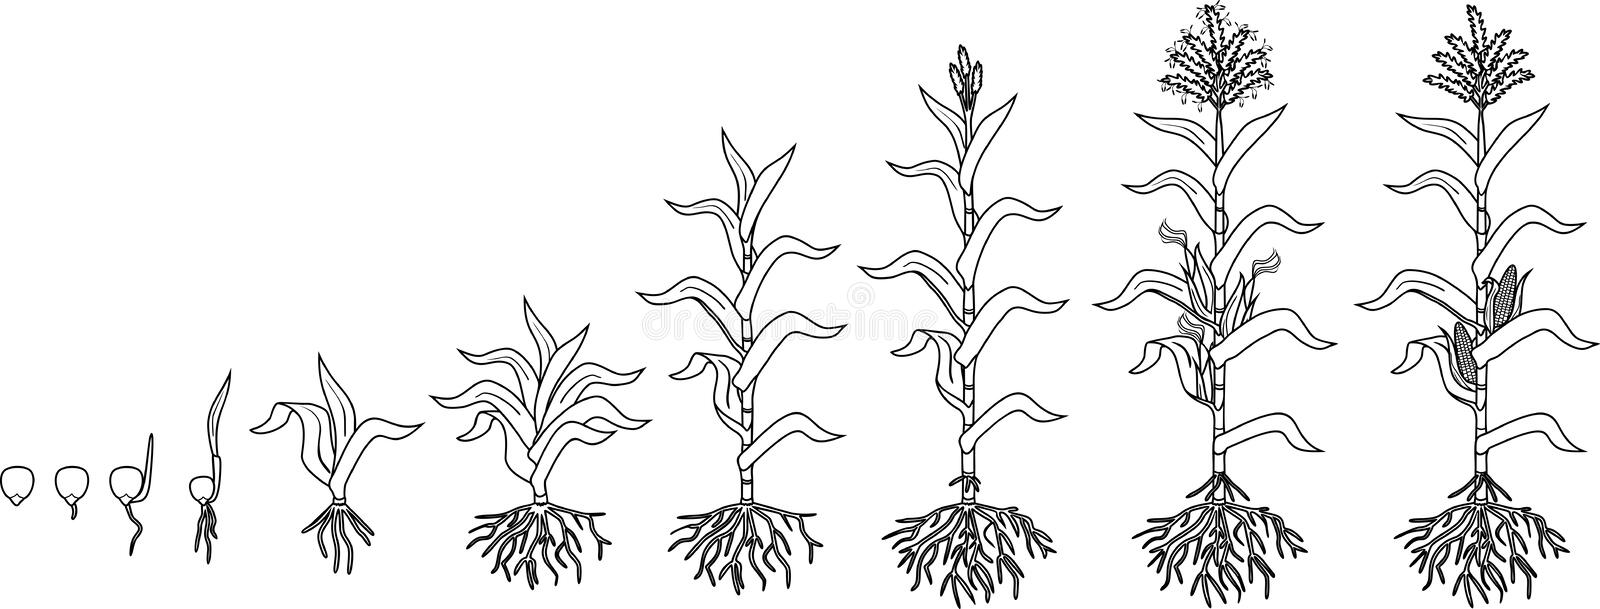 Corn coloring page stock illustration. Illustration of